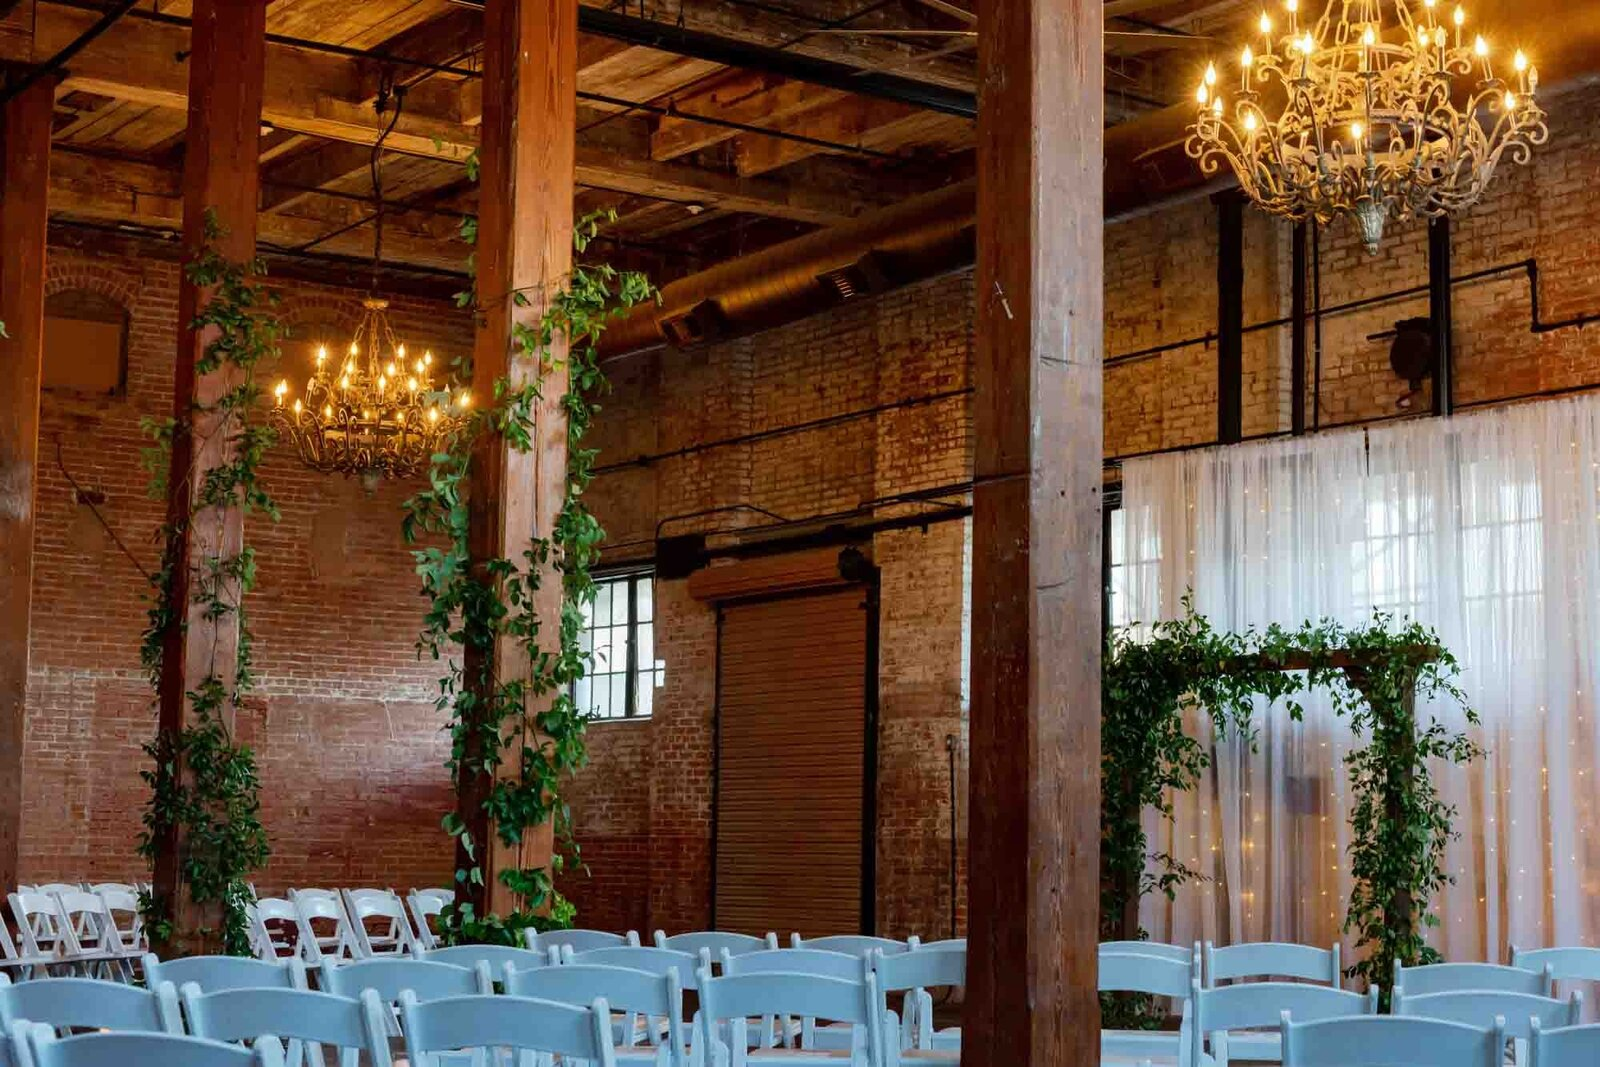 East-McKinney-Luxury-Wedding-Venue-Dallas-Fort-Worth-McKinney-Texas-40